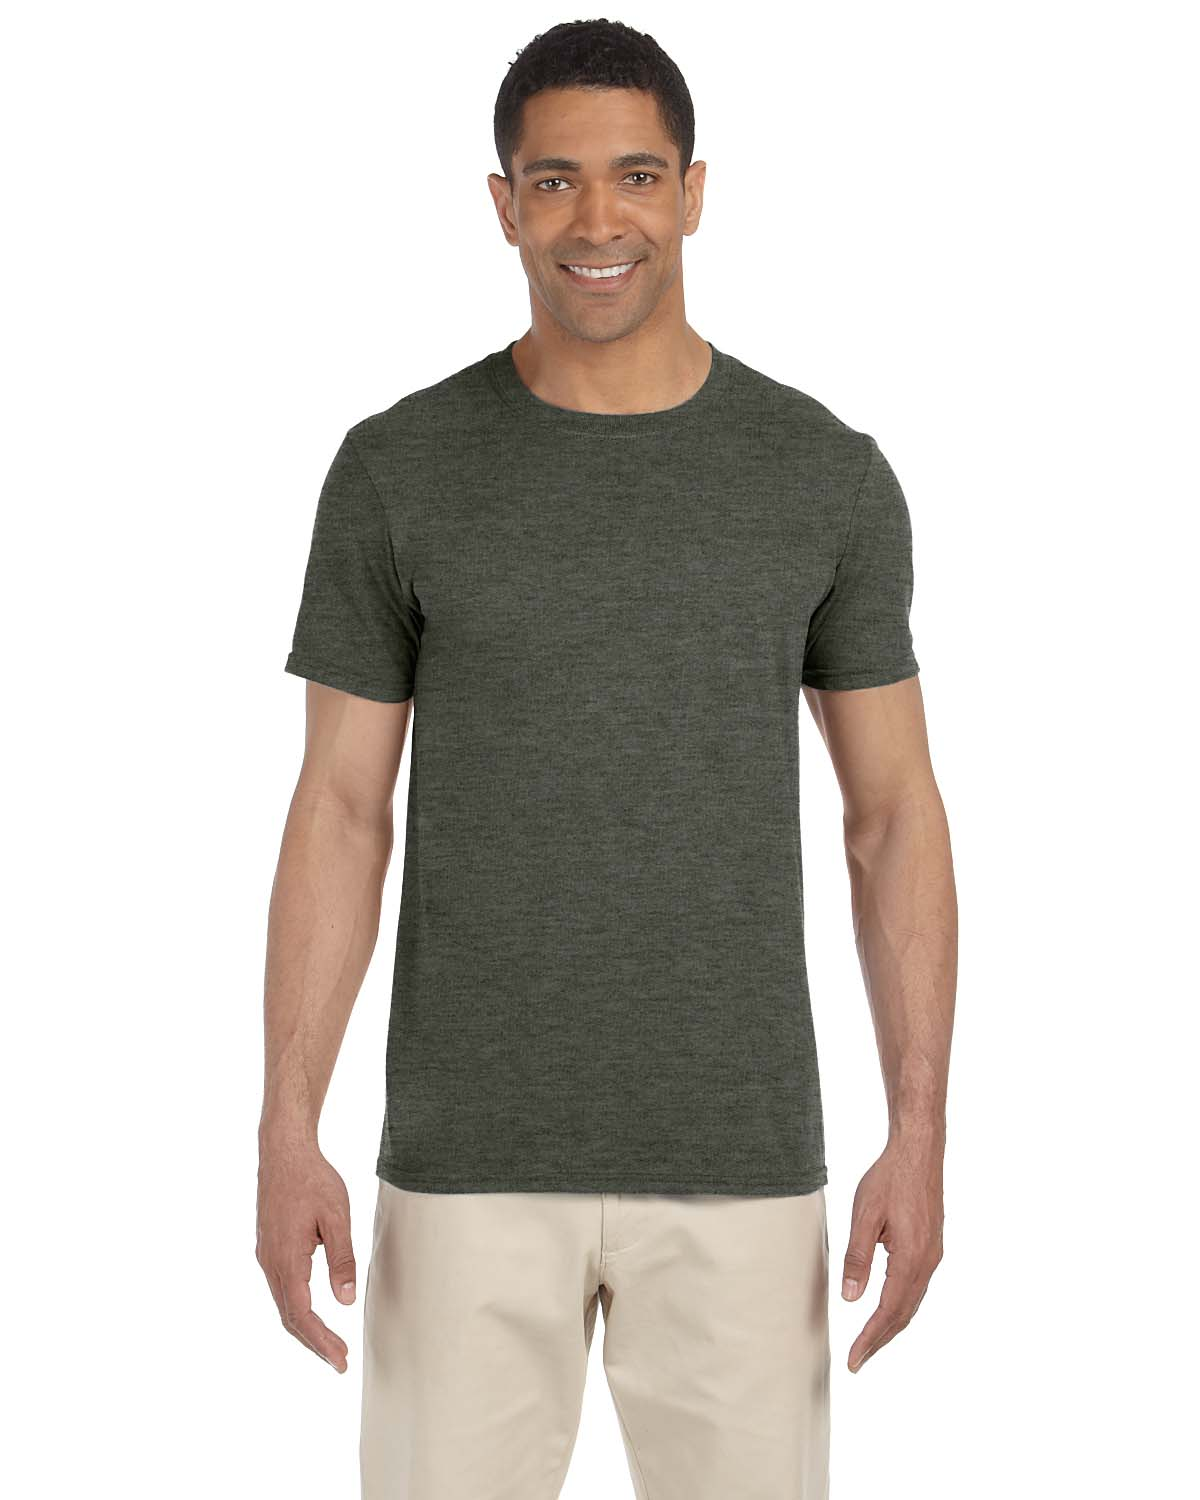 Gildan Softstyle® 4.5 Oz. T-Shirt